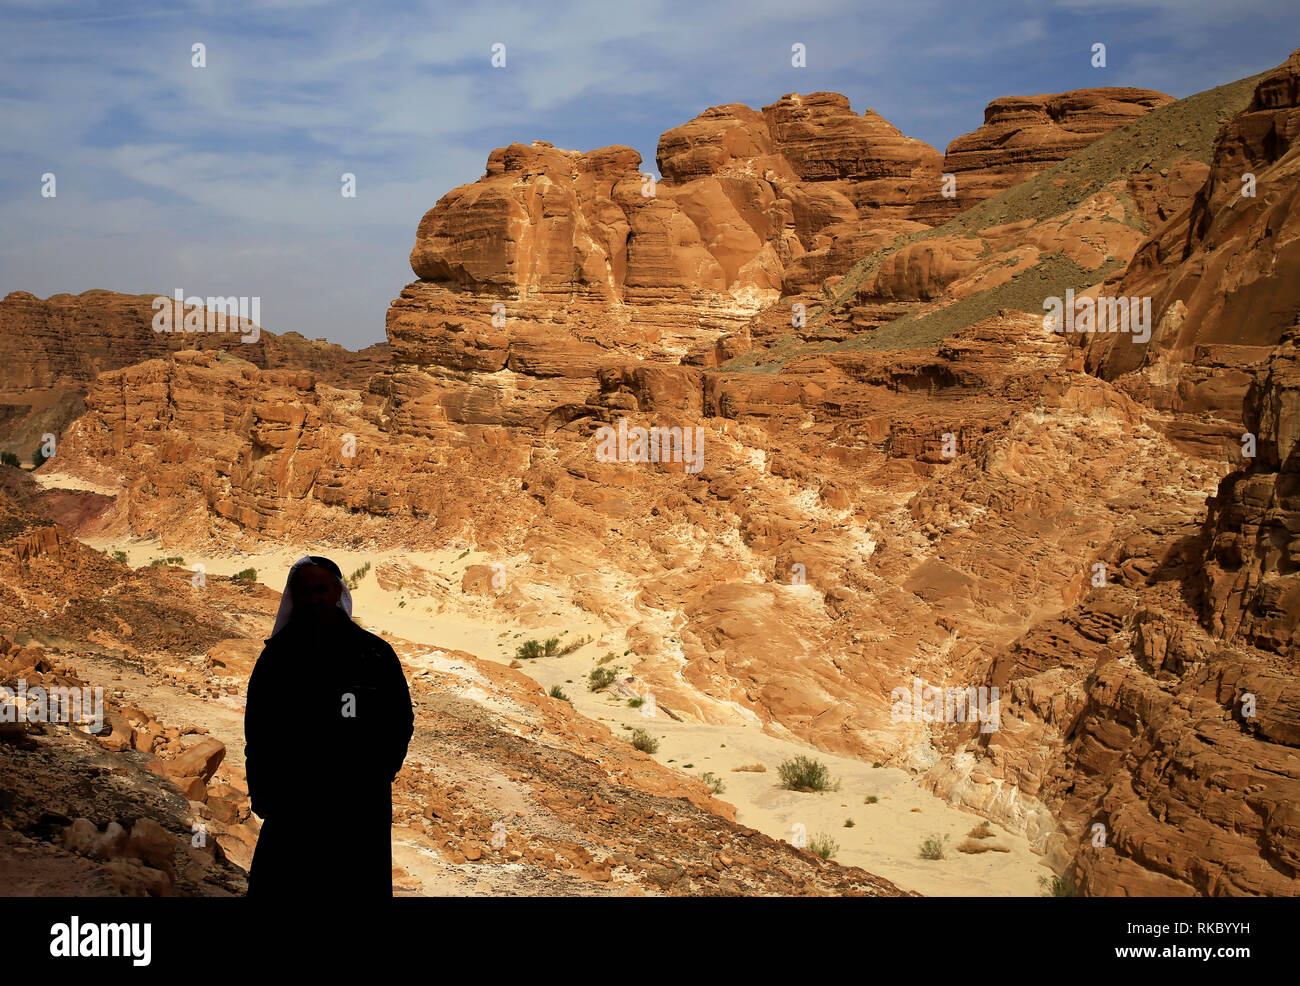 Rock formations in Egypt's Coloured Canyon, located near the Sinai town of Nuweiba, Egypt. Photo taken Jan. 24, 2019. (Photo/Hasan Jamali) - Stock Image